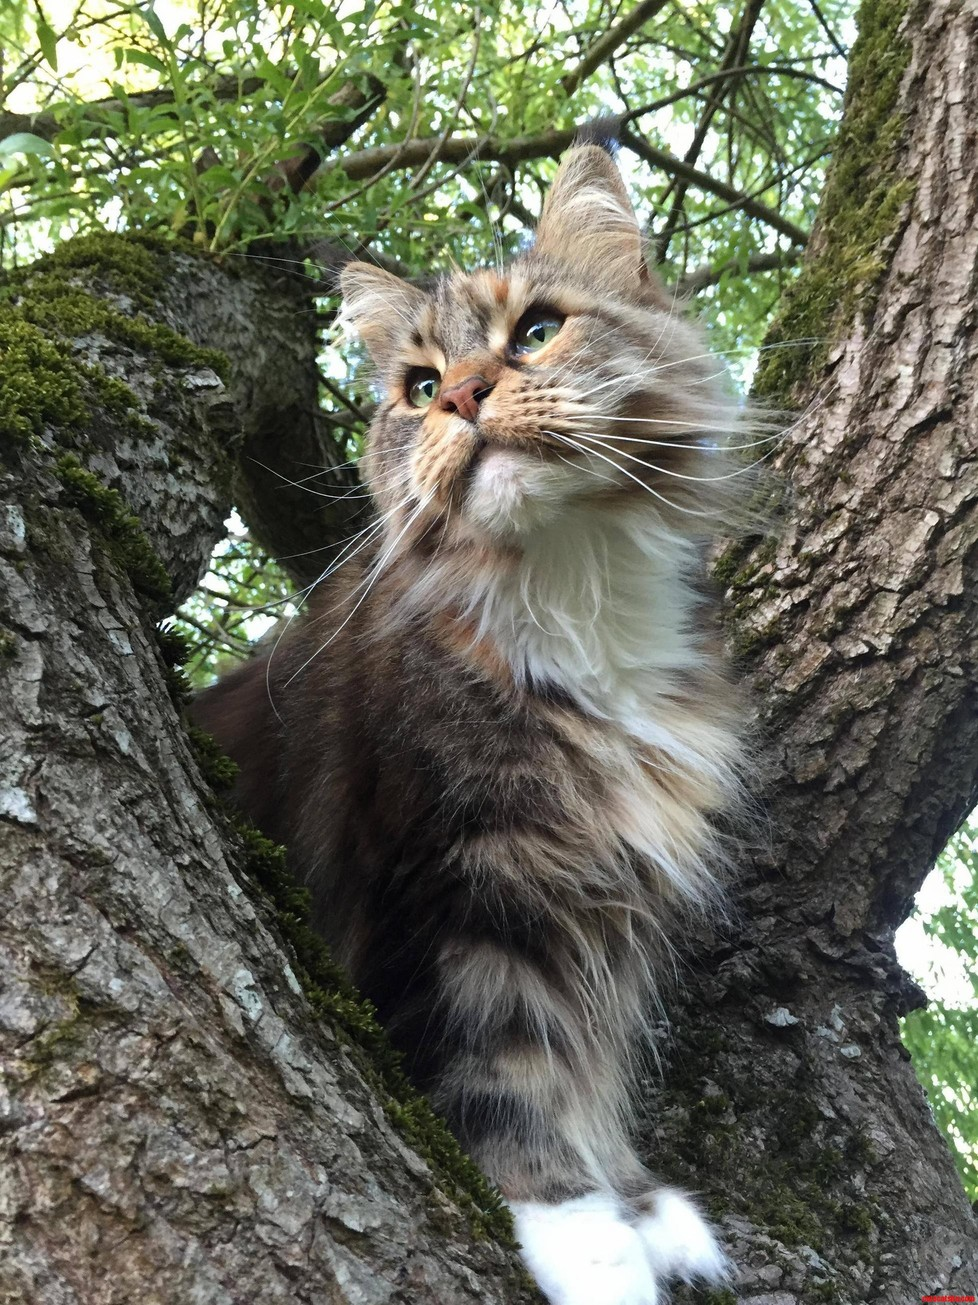 My cat Beatrice effortlessly photogenic maine coon fool that she is.